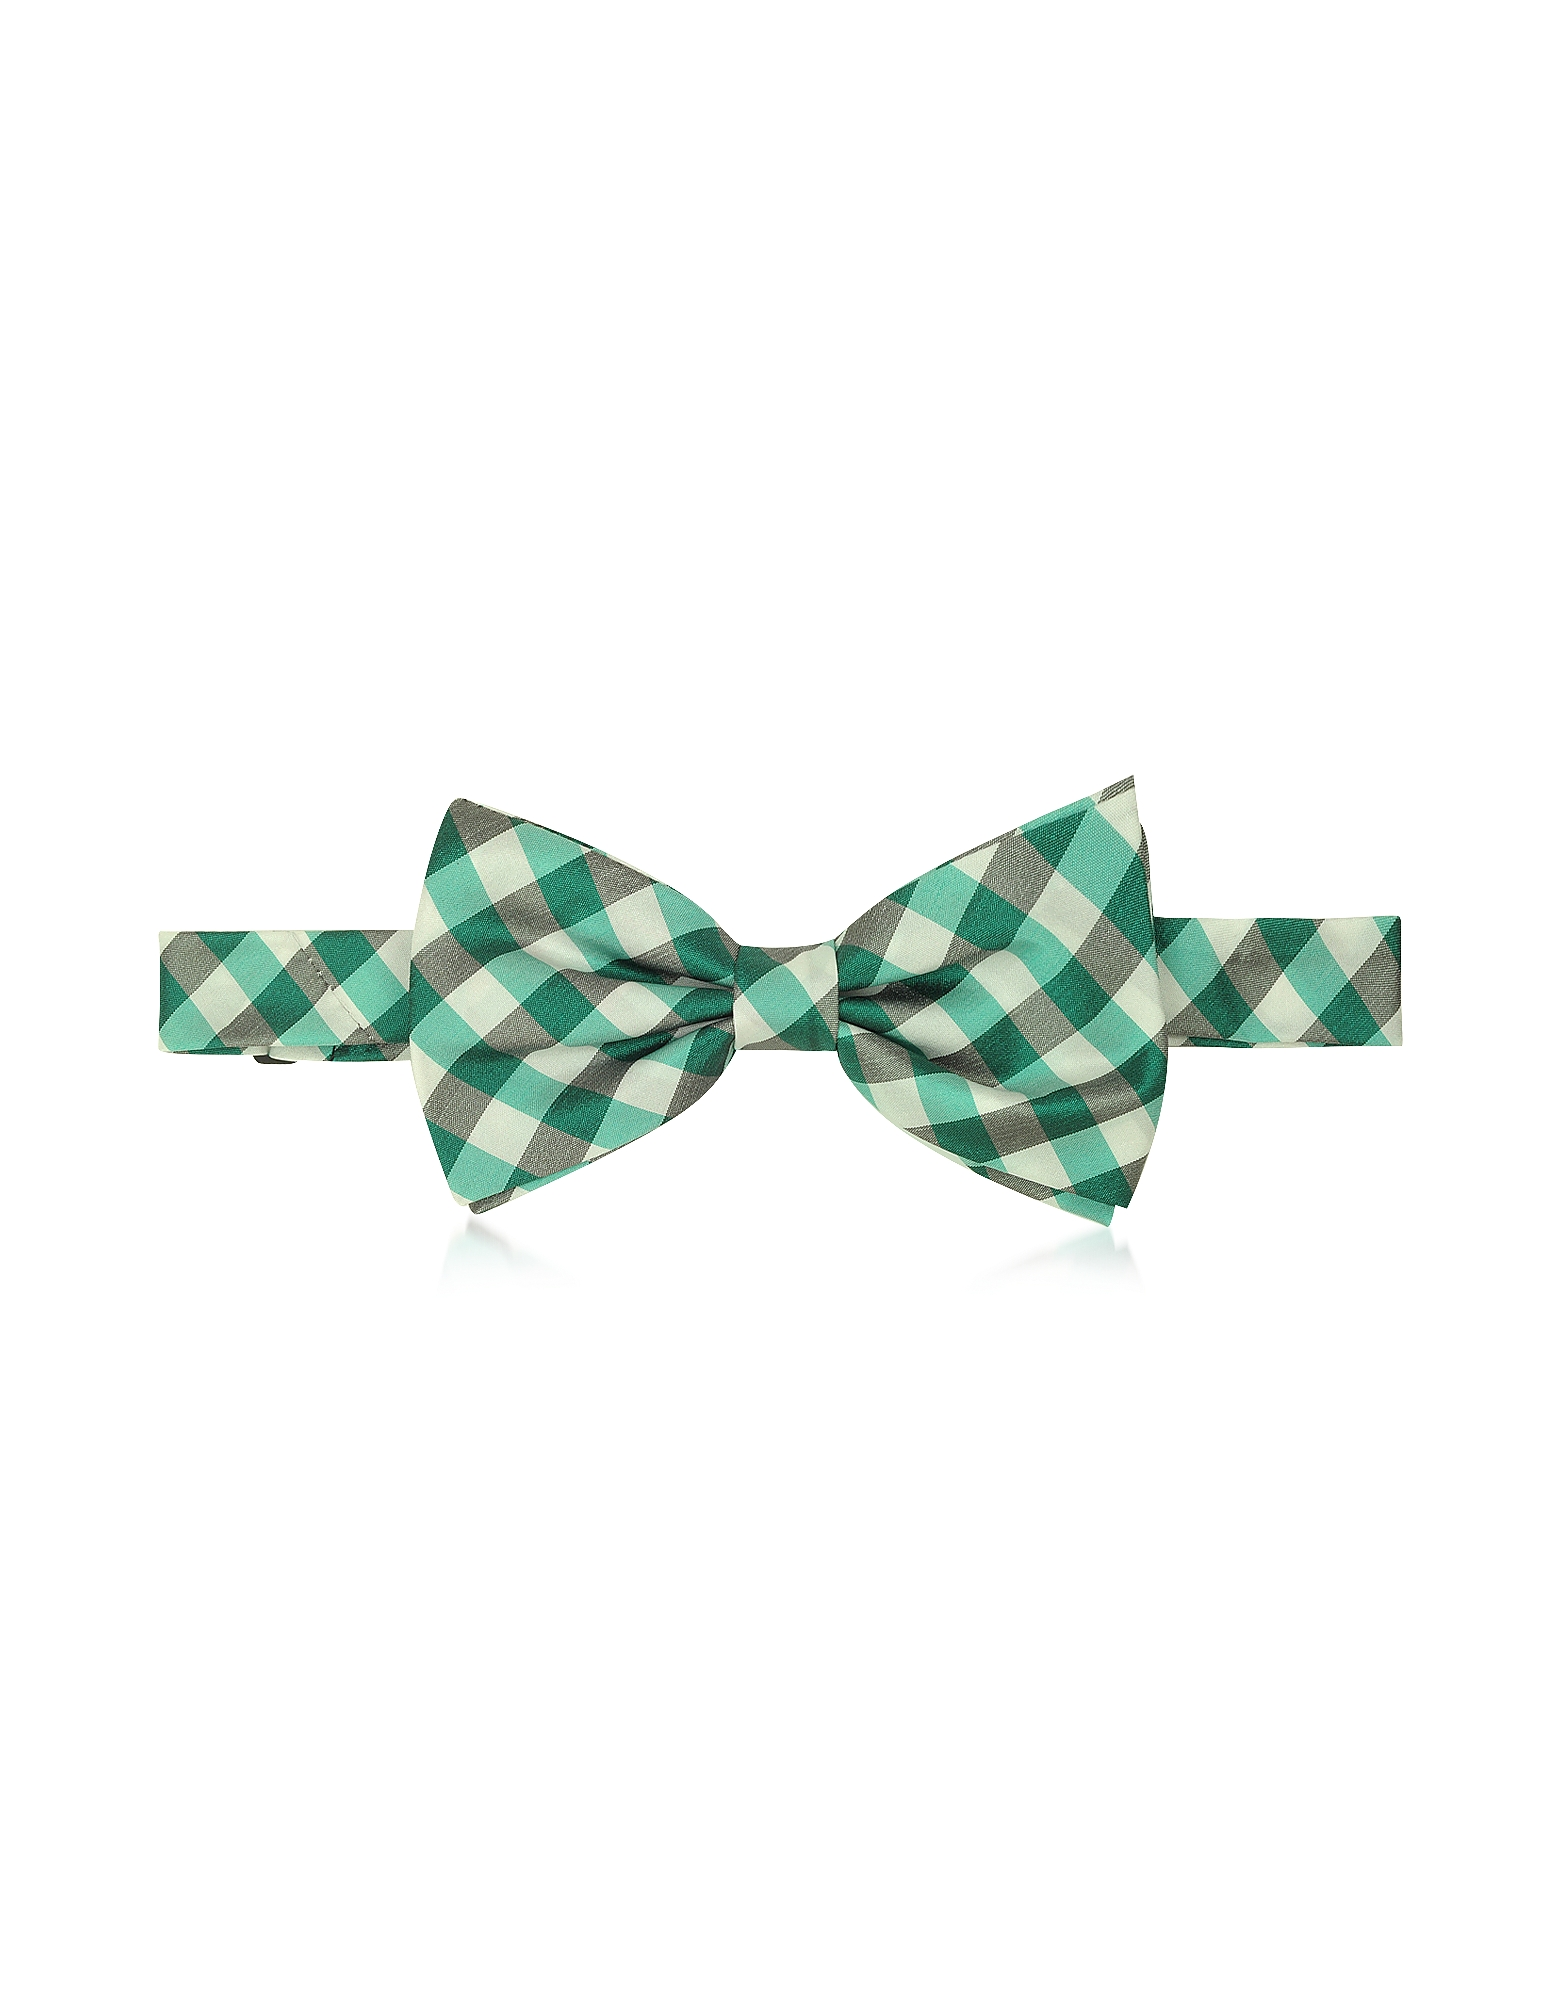 Green Plaid Woven Silk Pre-tied Bow Tie